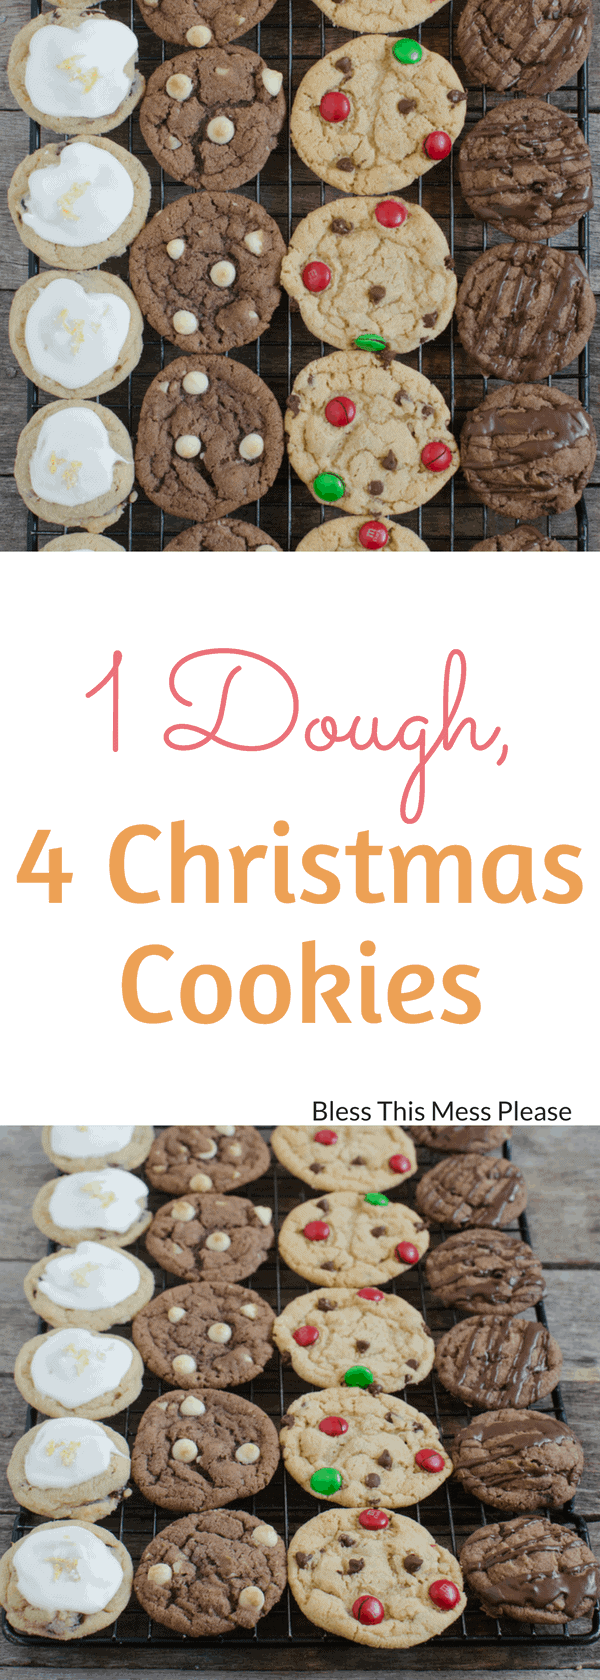 1 Dough, 4 Christmas Cookies